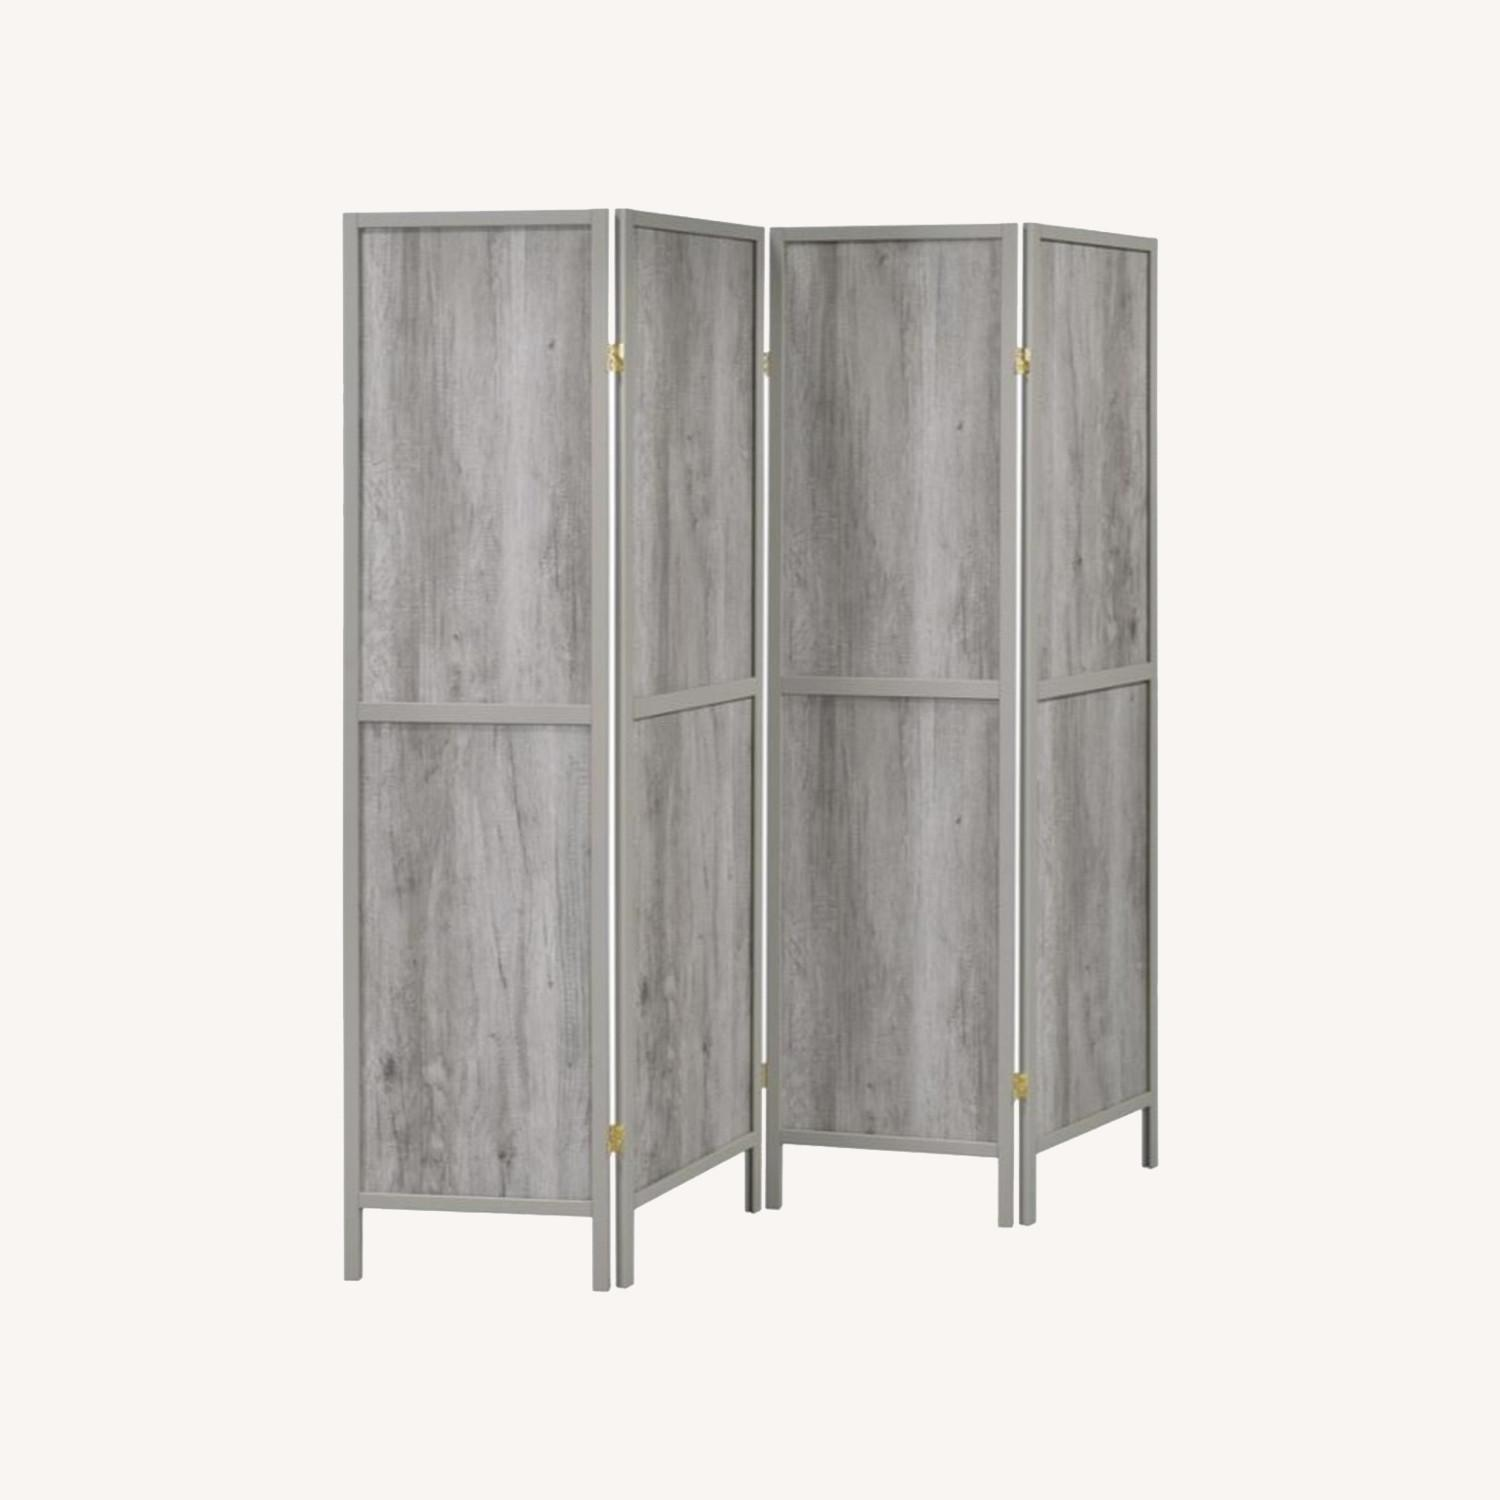 Four-Panel Folding Screen In Grey Driftwood Finish - image-4